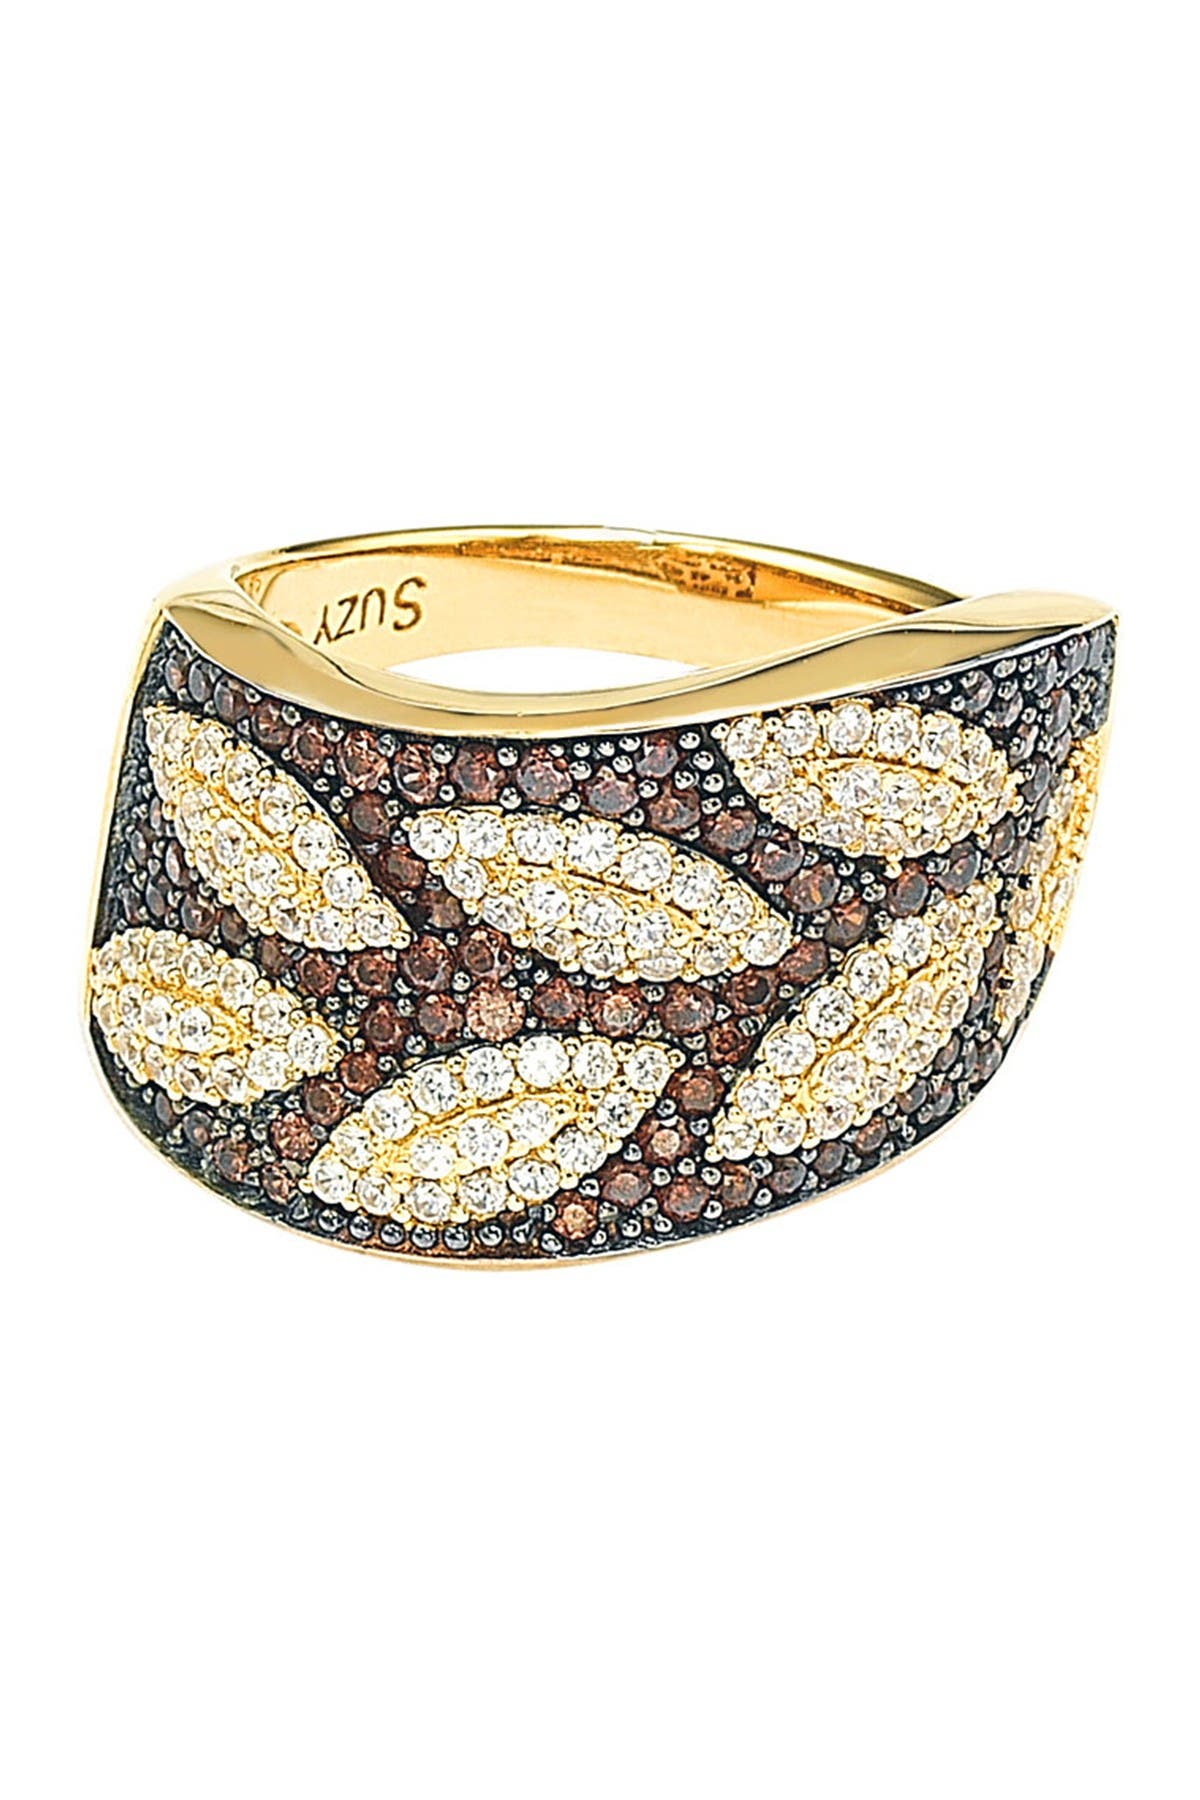 Image of Suzy Levian Brown & White CZ Gold Plated Sterling Silver Leaf Ring